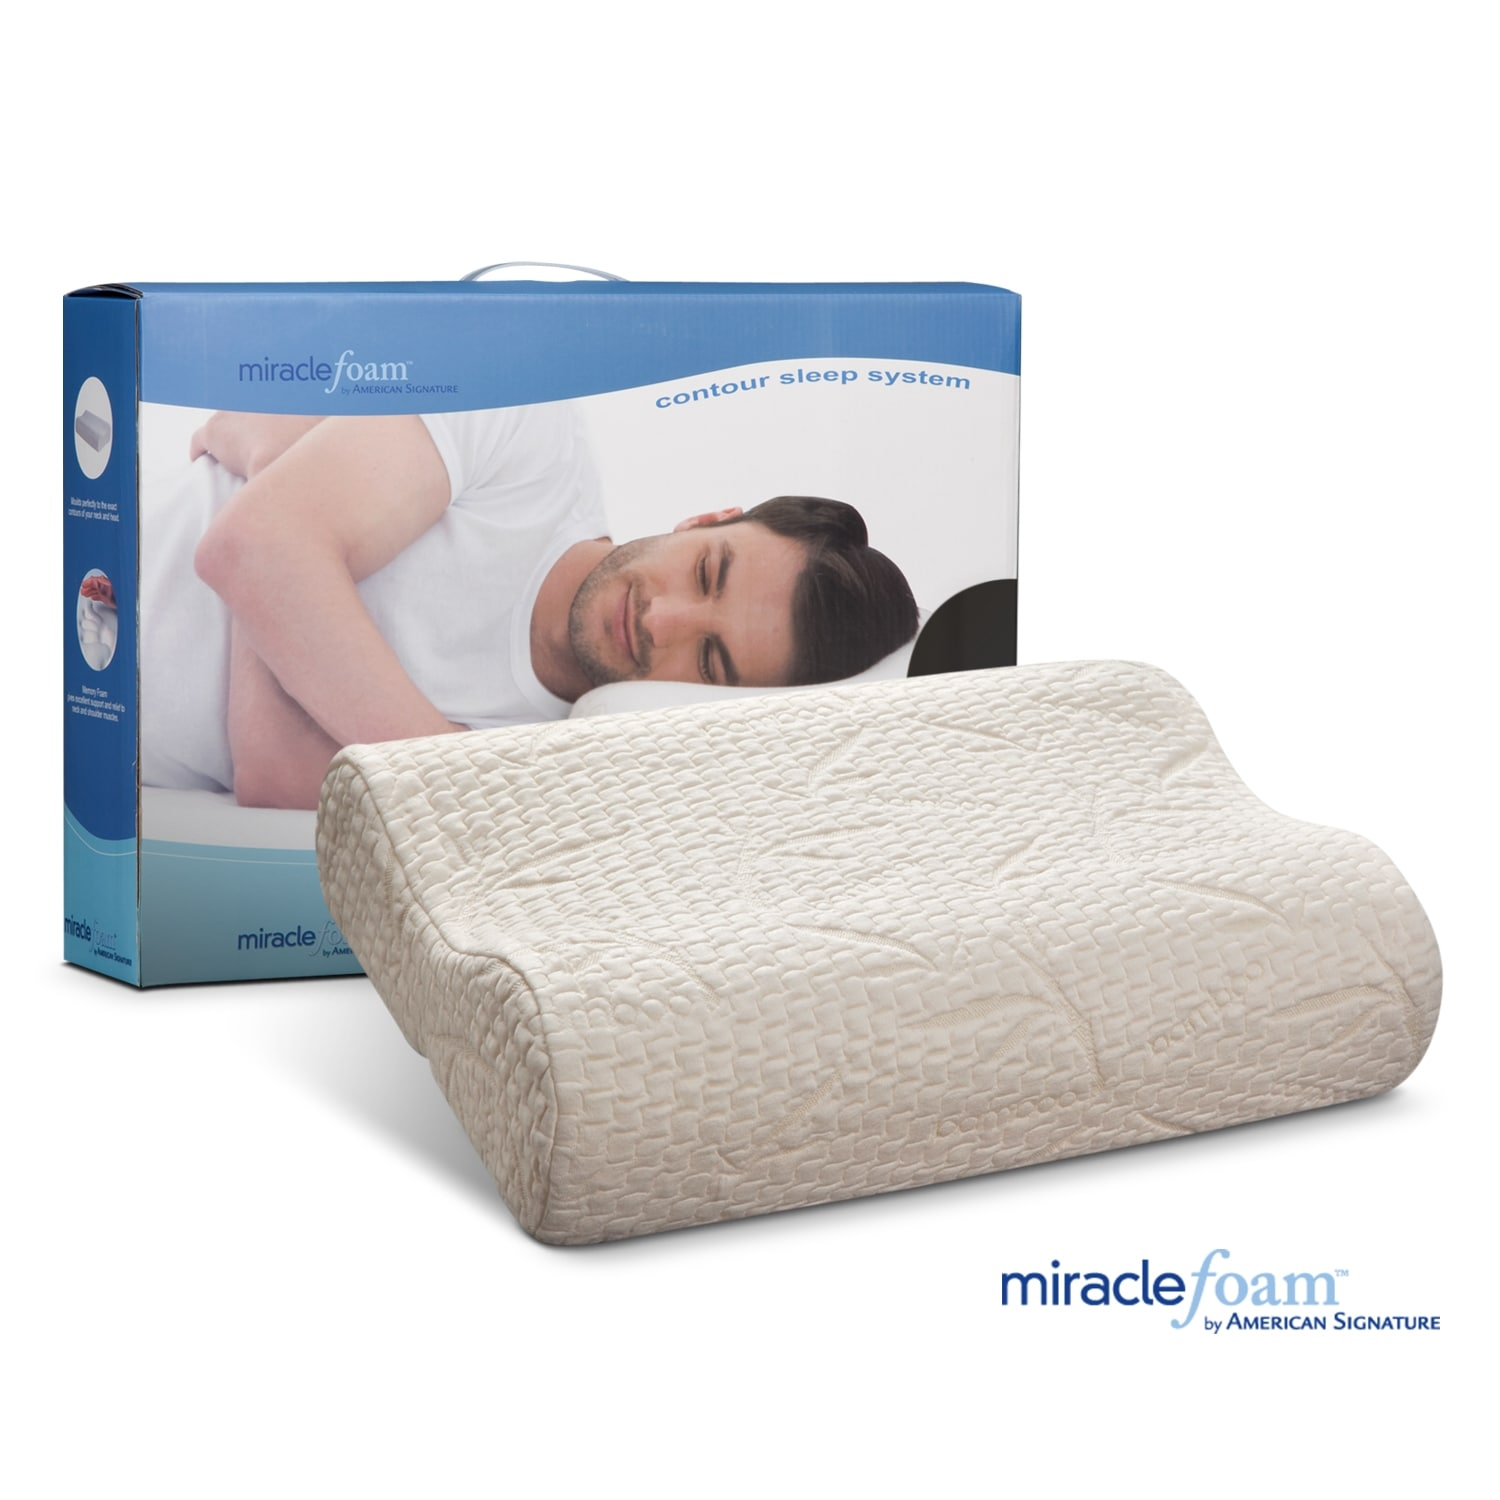 Mattresses and Bedding - Miracle Foam Contour Pillow